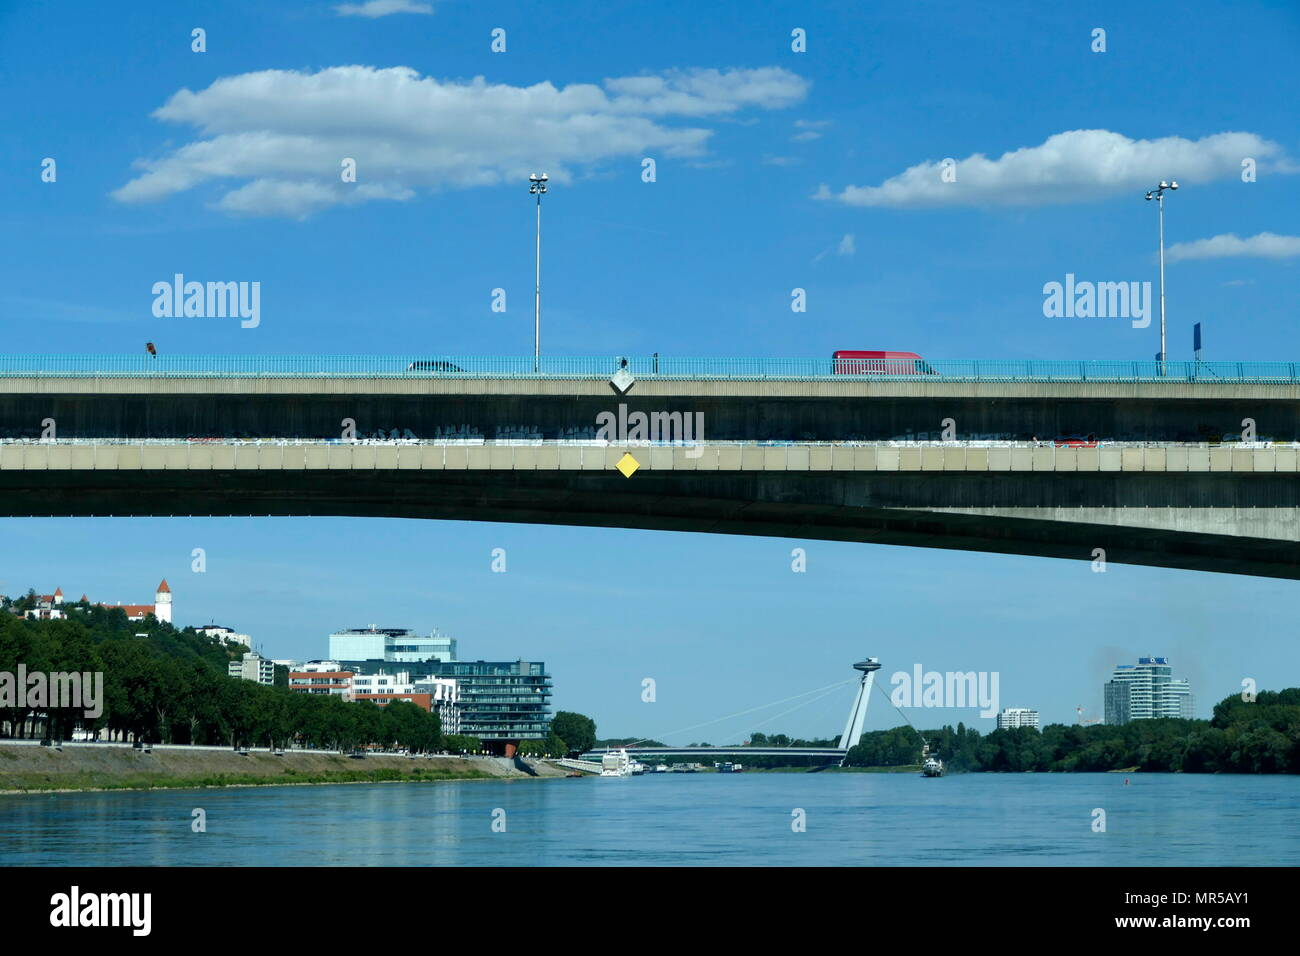 Photograph of taken of bridges spanning the length of the River Danube in Bratislava, the capital of Slovakia. Dated 21st Century - Stock Image